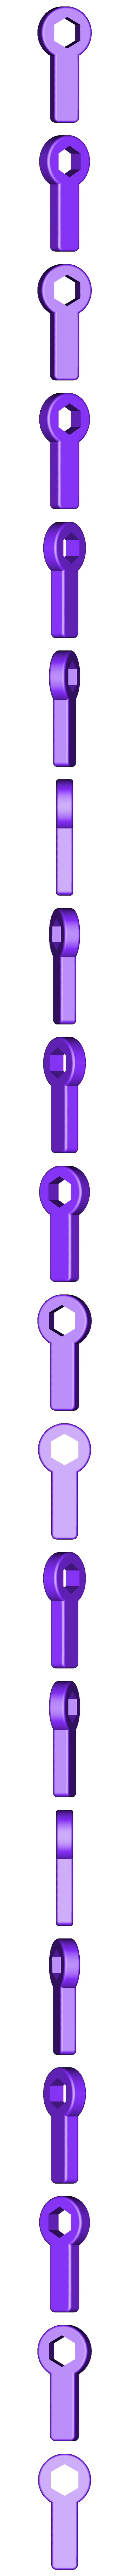 playmobil_wrench2.stl Download free STL file Playmobil toolbox with tools • 3D printable template, sokinkeso